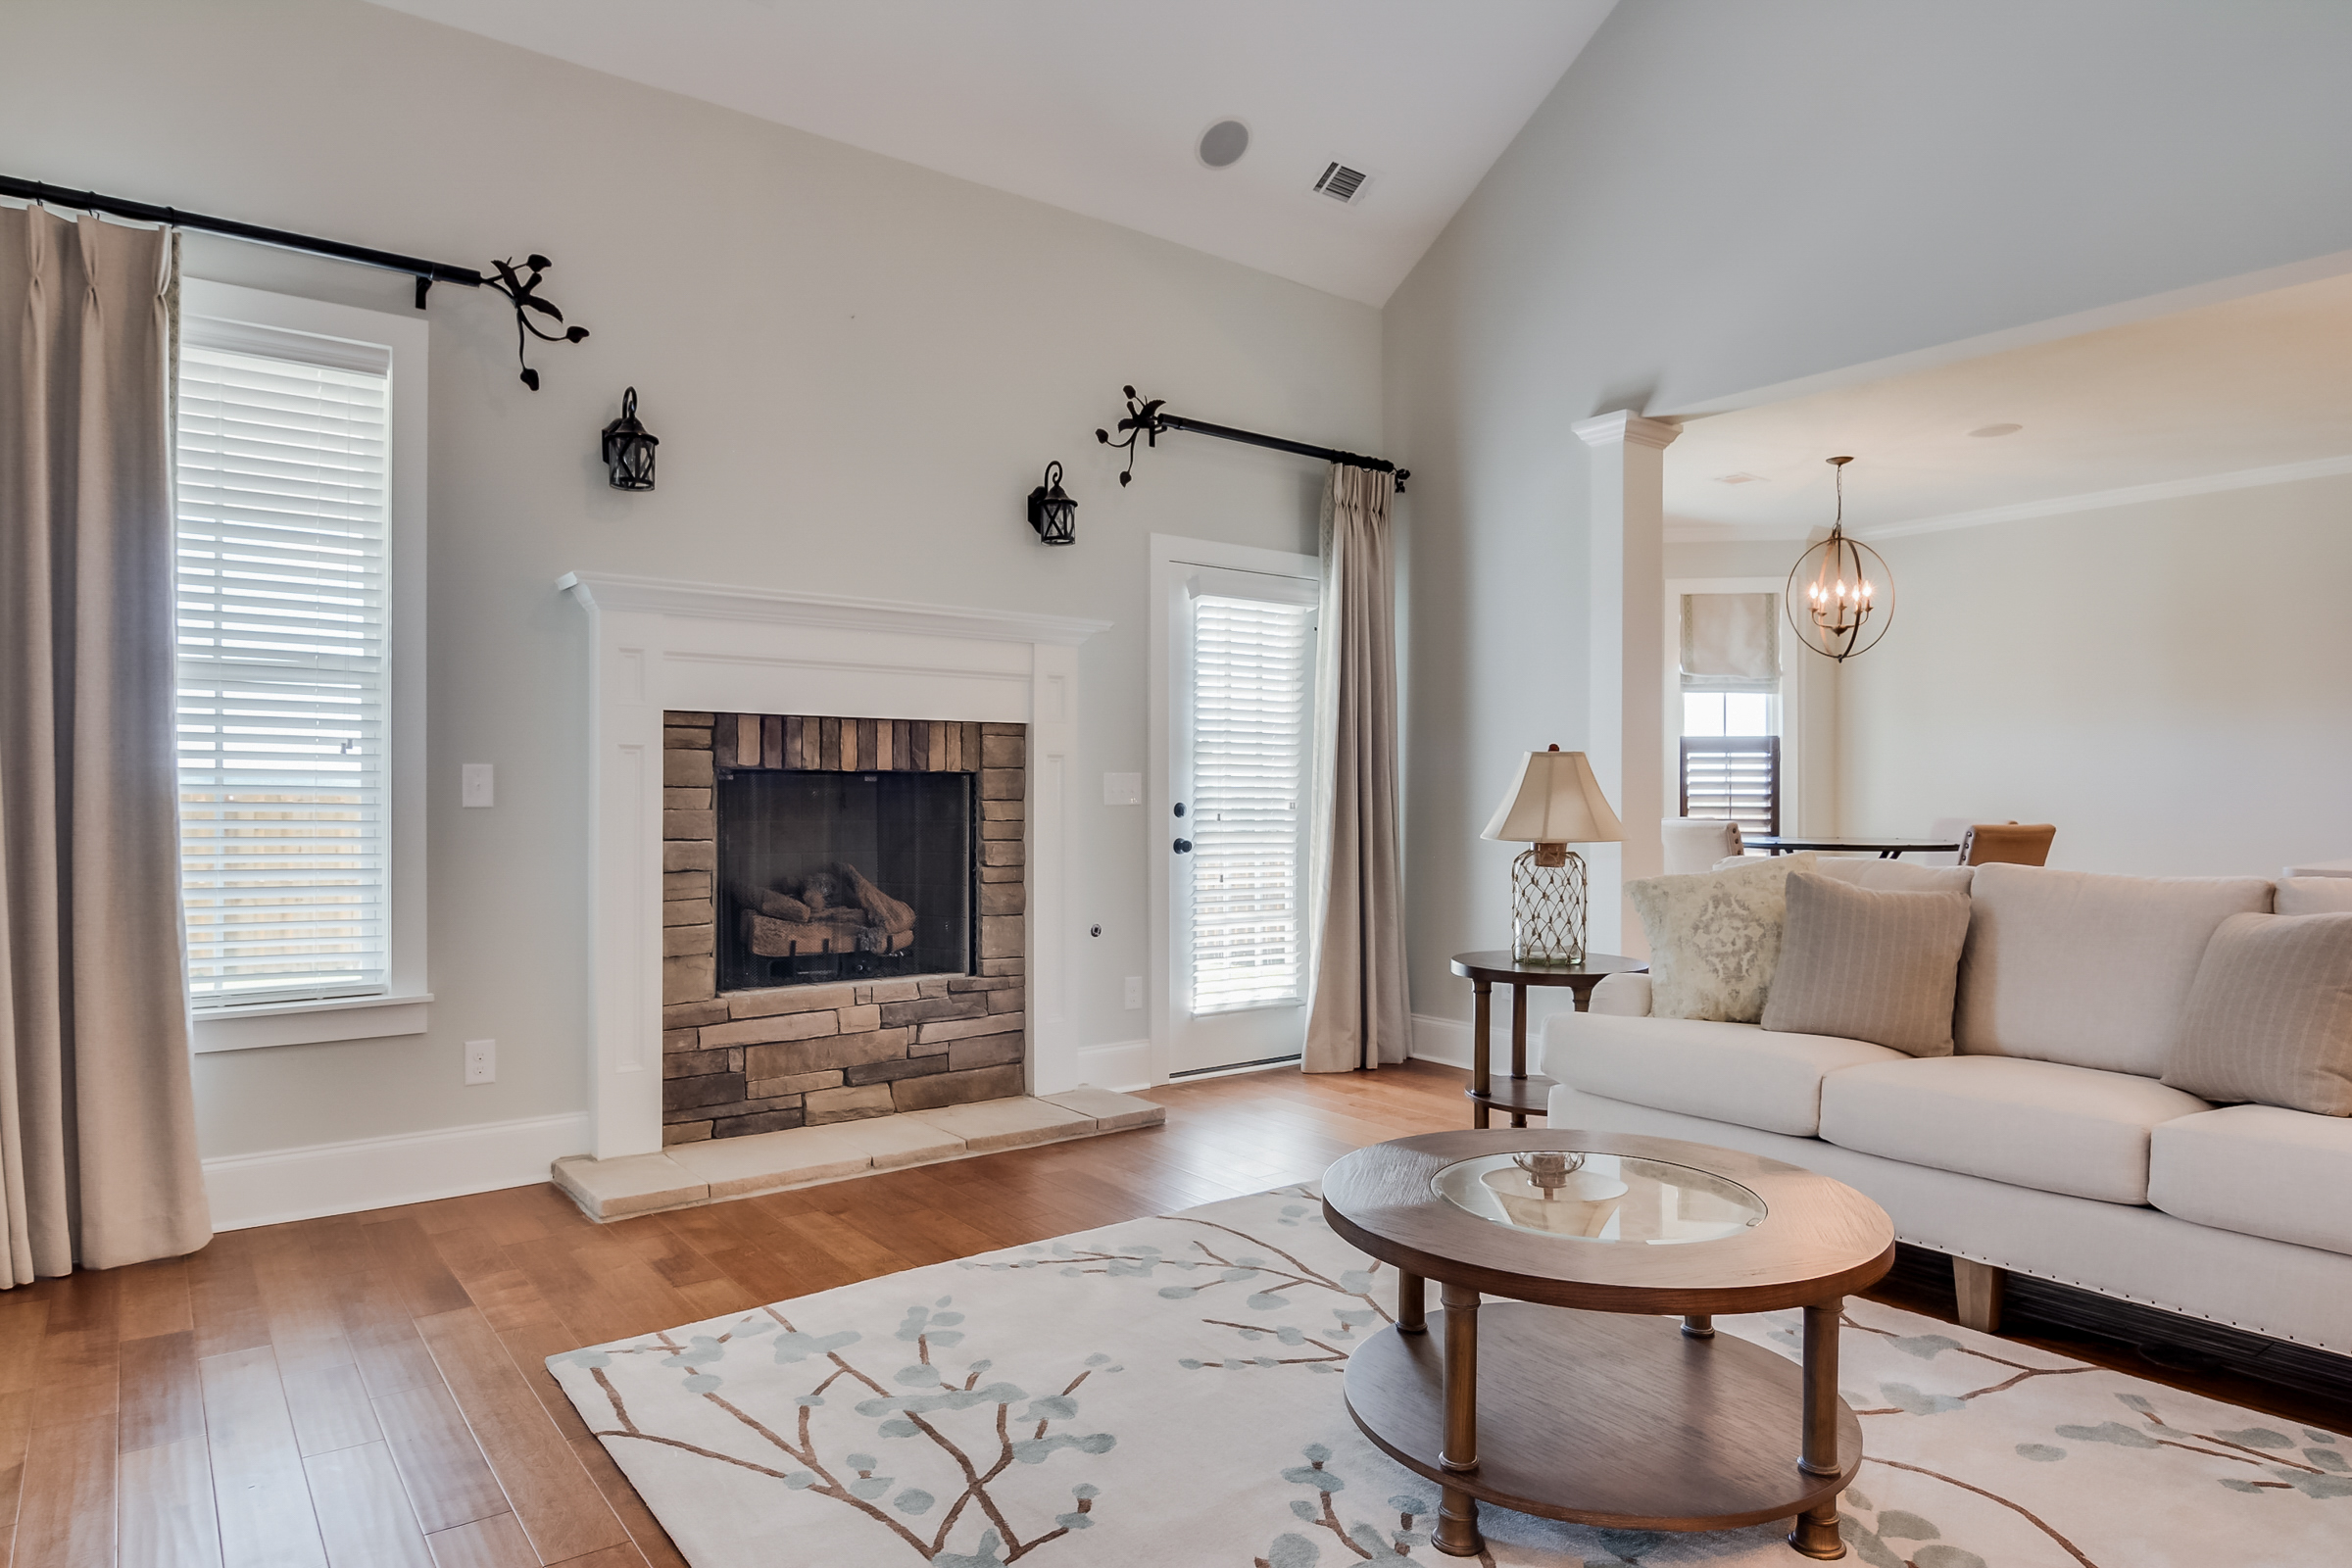 An image of the fireplace in Greggs Mill home.